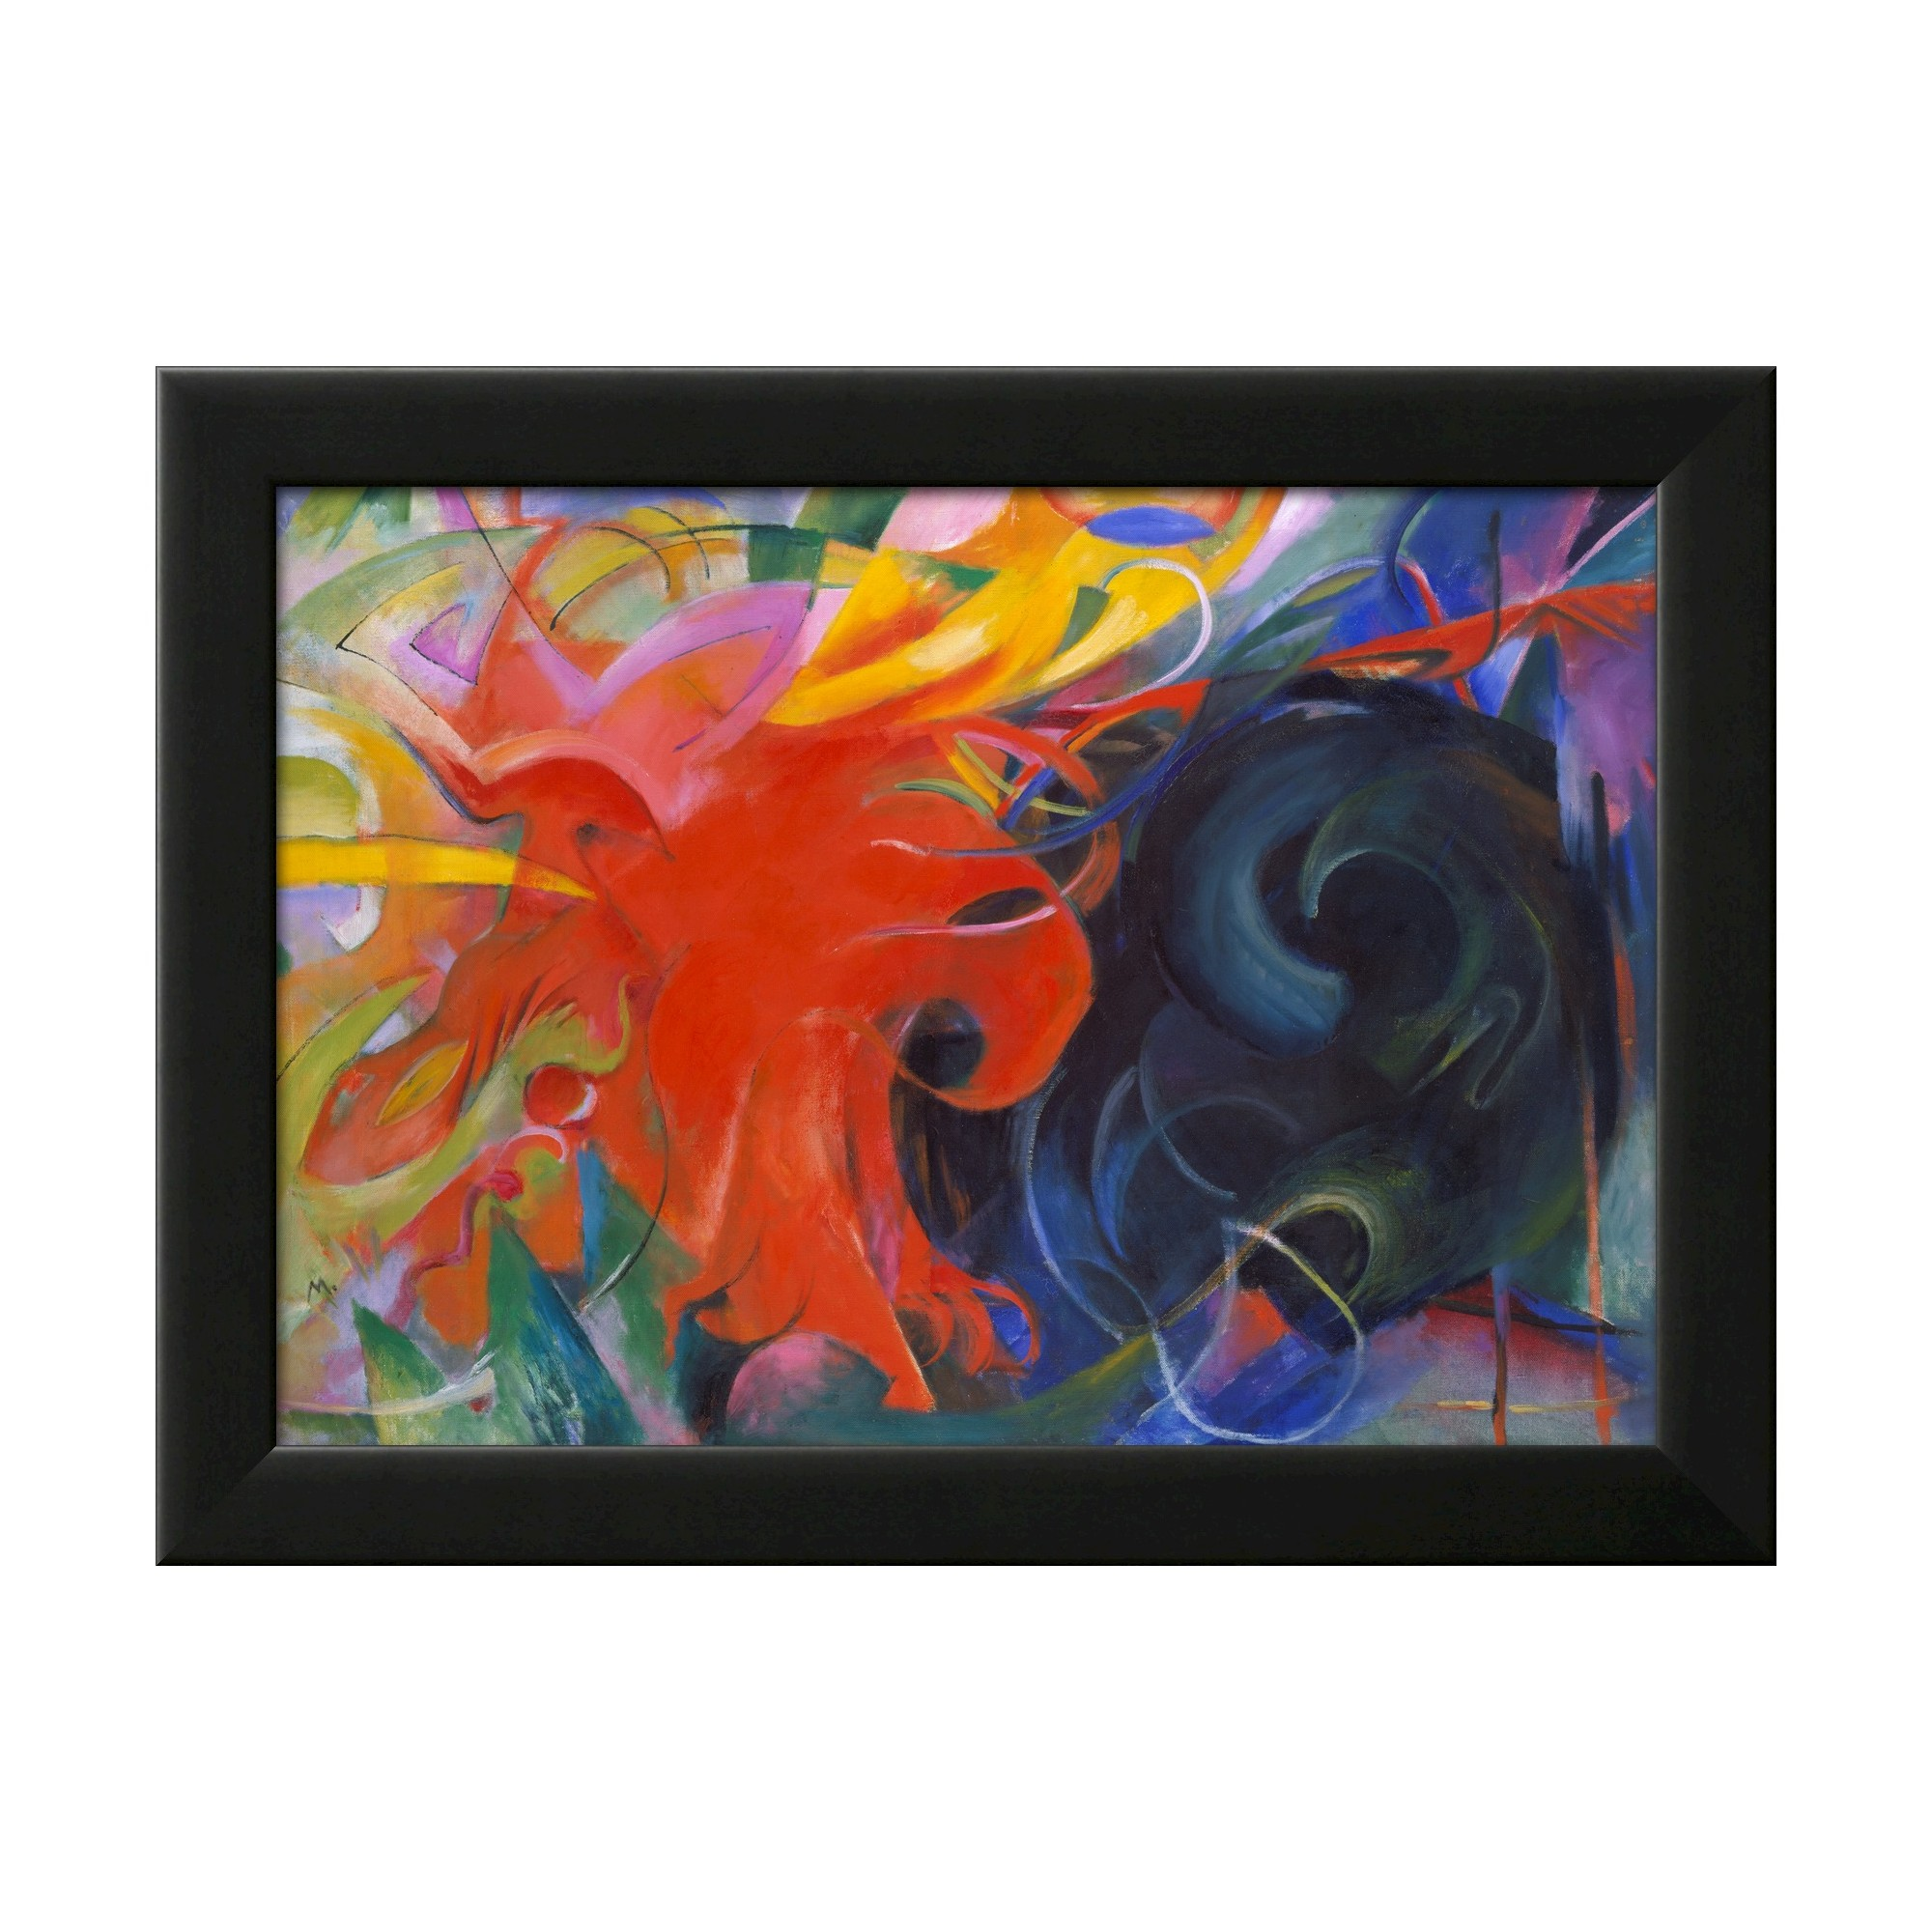 Art framed wall poster print fighting shapes red red